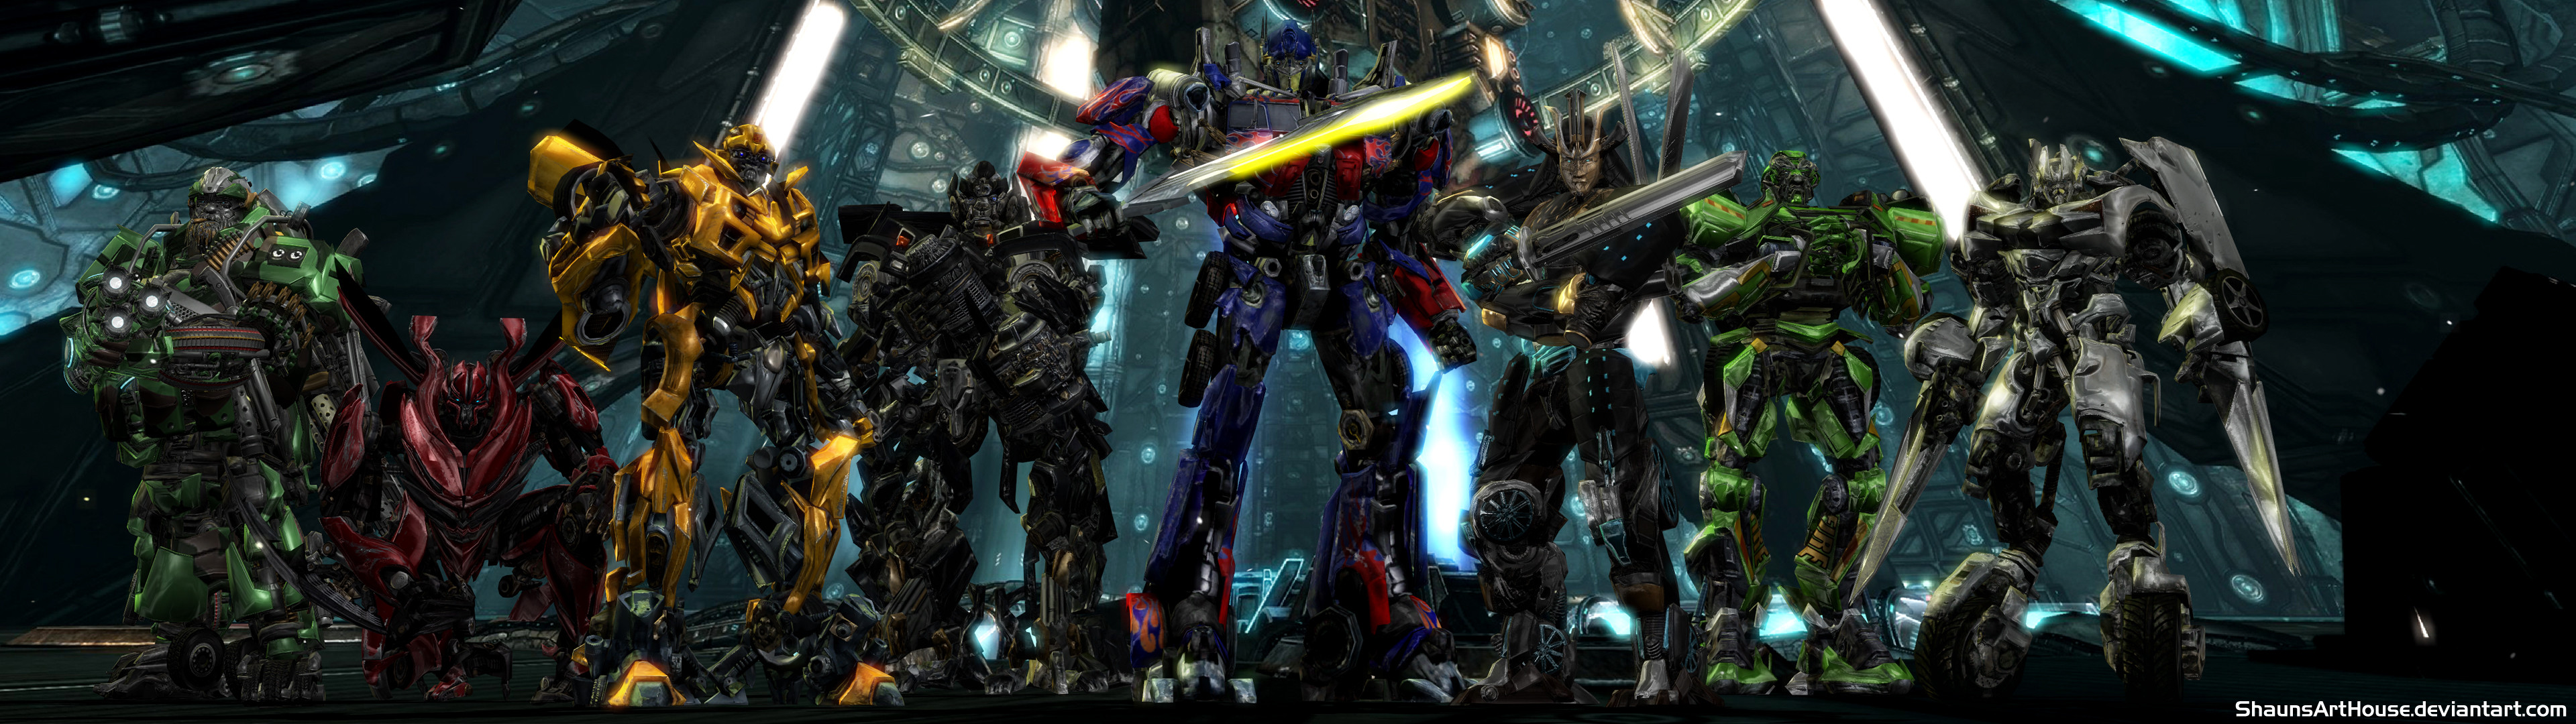 Res: 3840x1080, ... Transformers - Autobots Dual Screen Wallpaper by ShaunsArtHouse